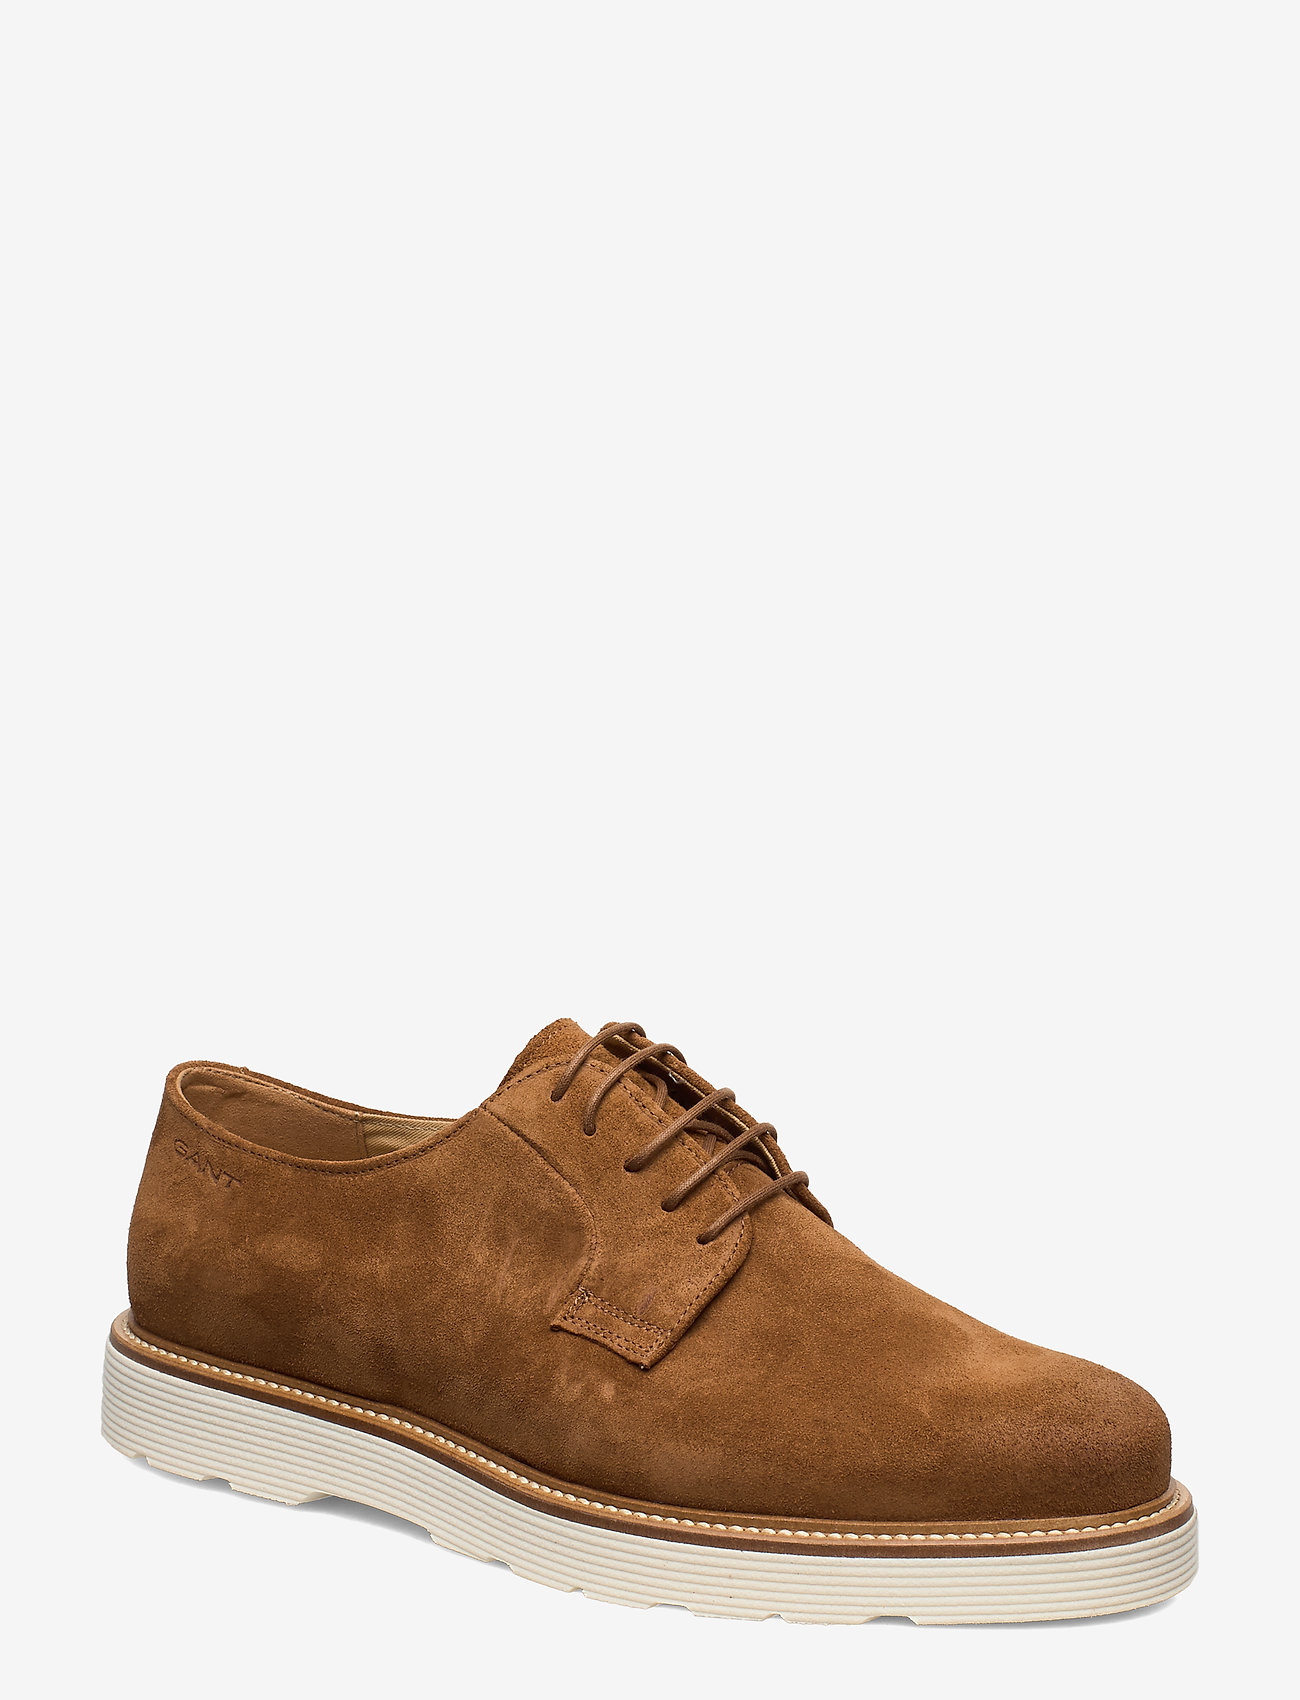 GANT - Prepburg Low lace shoes - chaussures lacées - cognac - 0